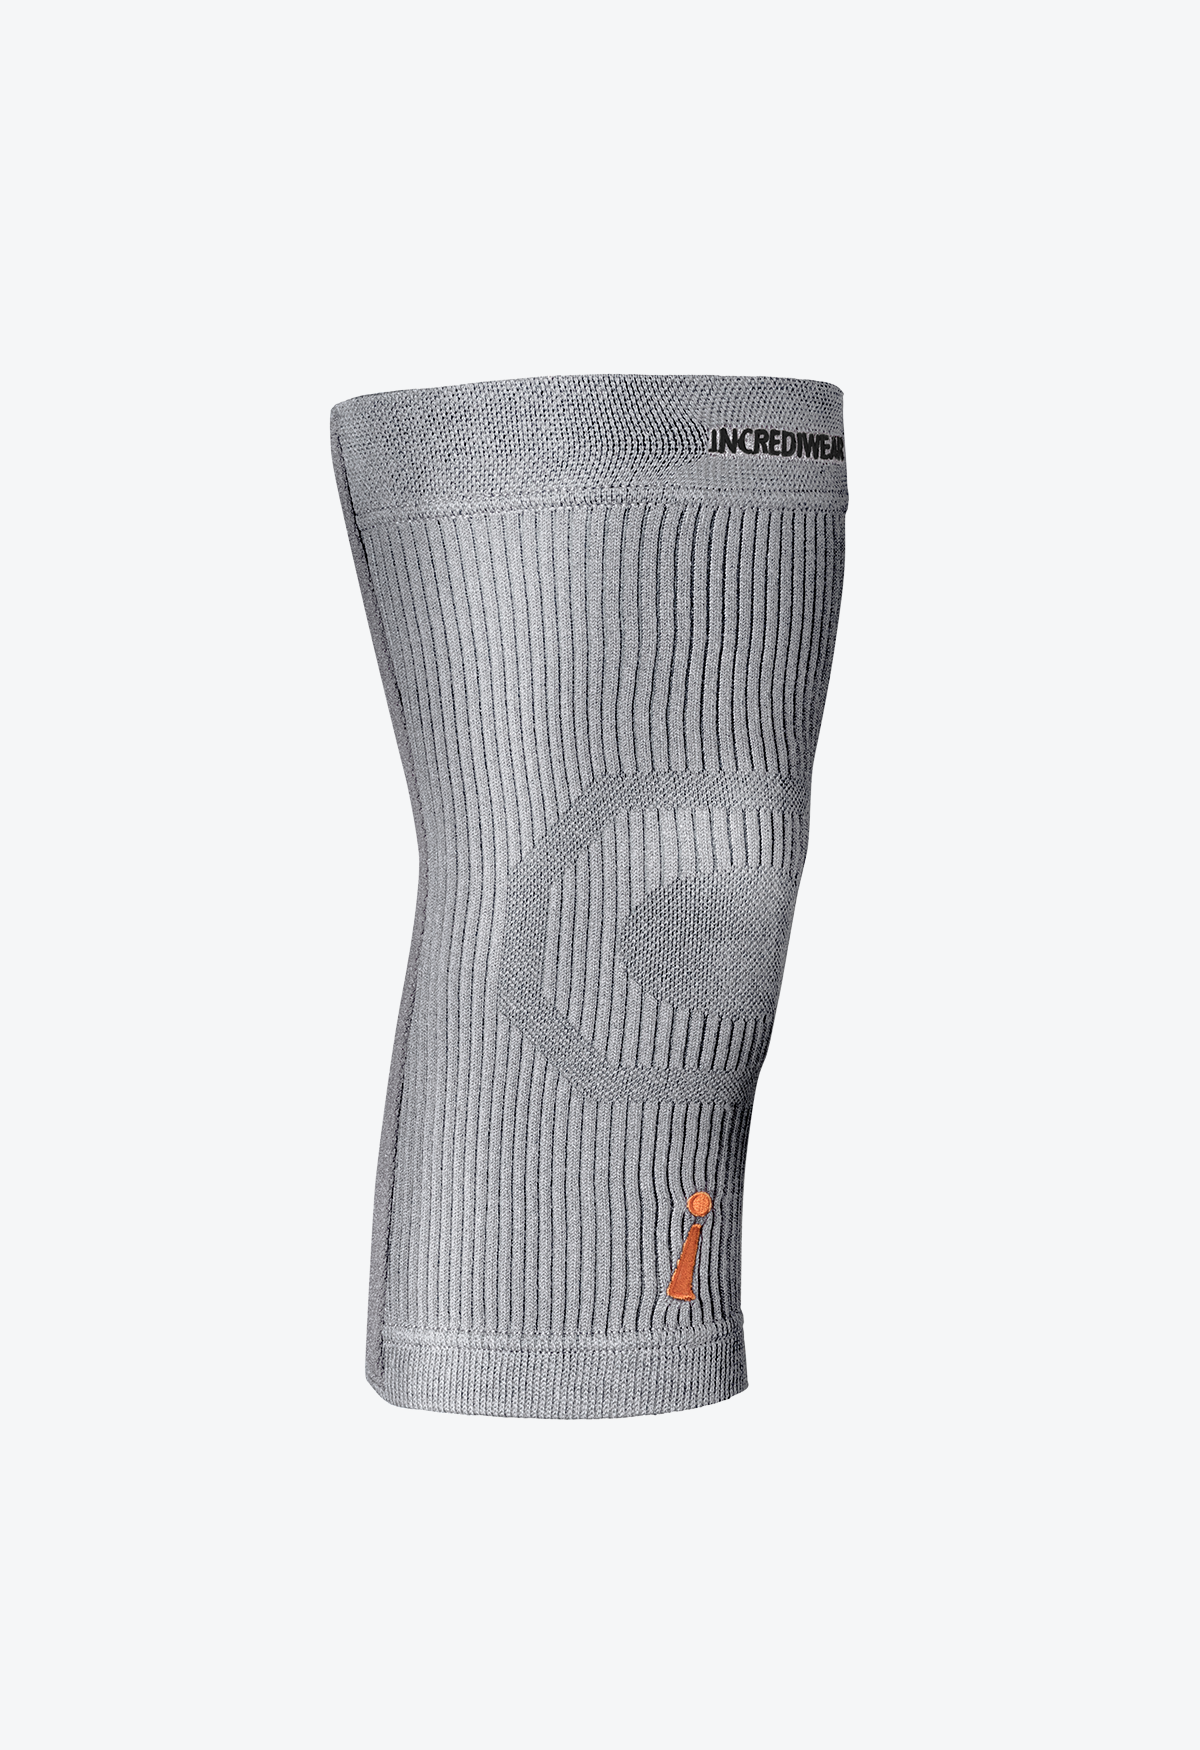 Incrediwear Knee Sleeve